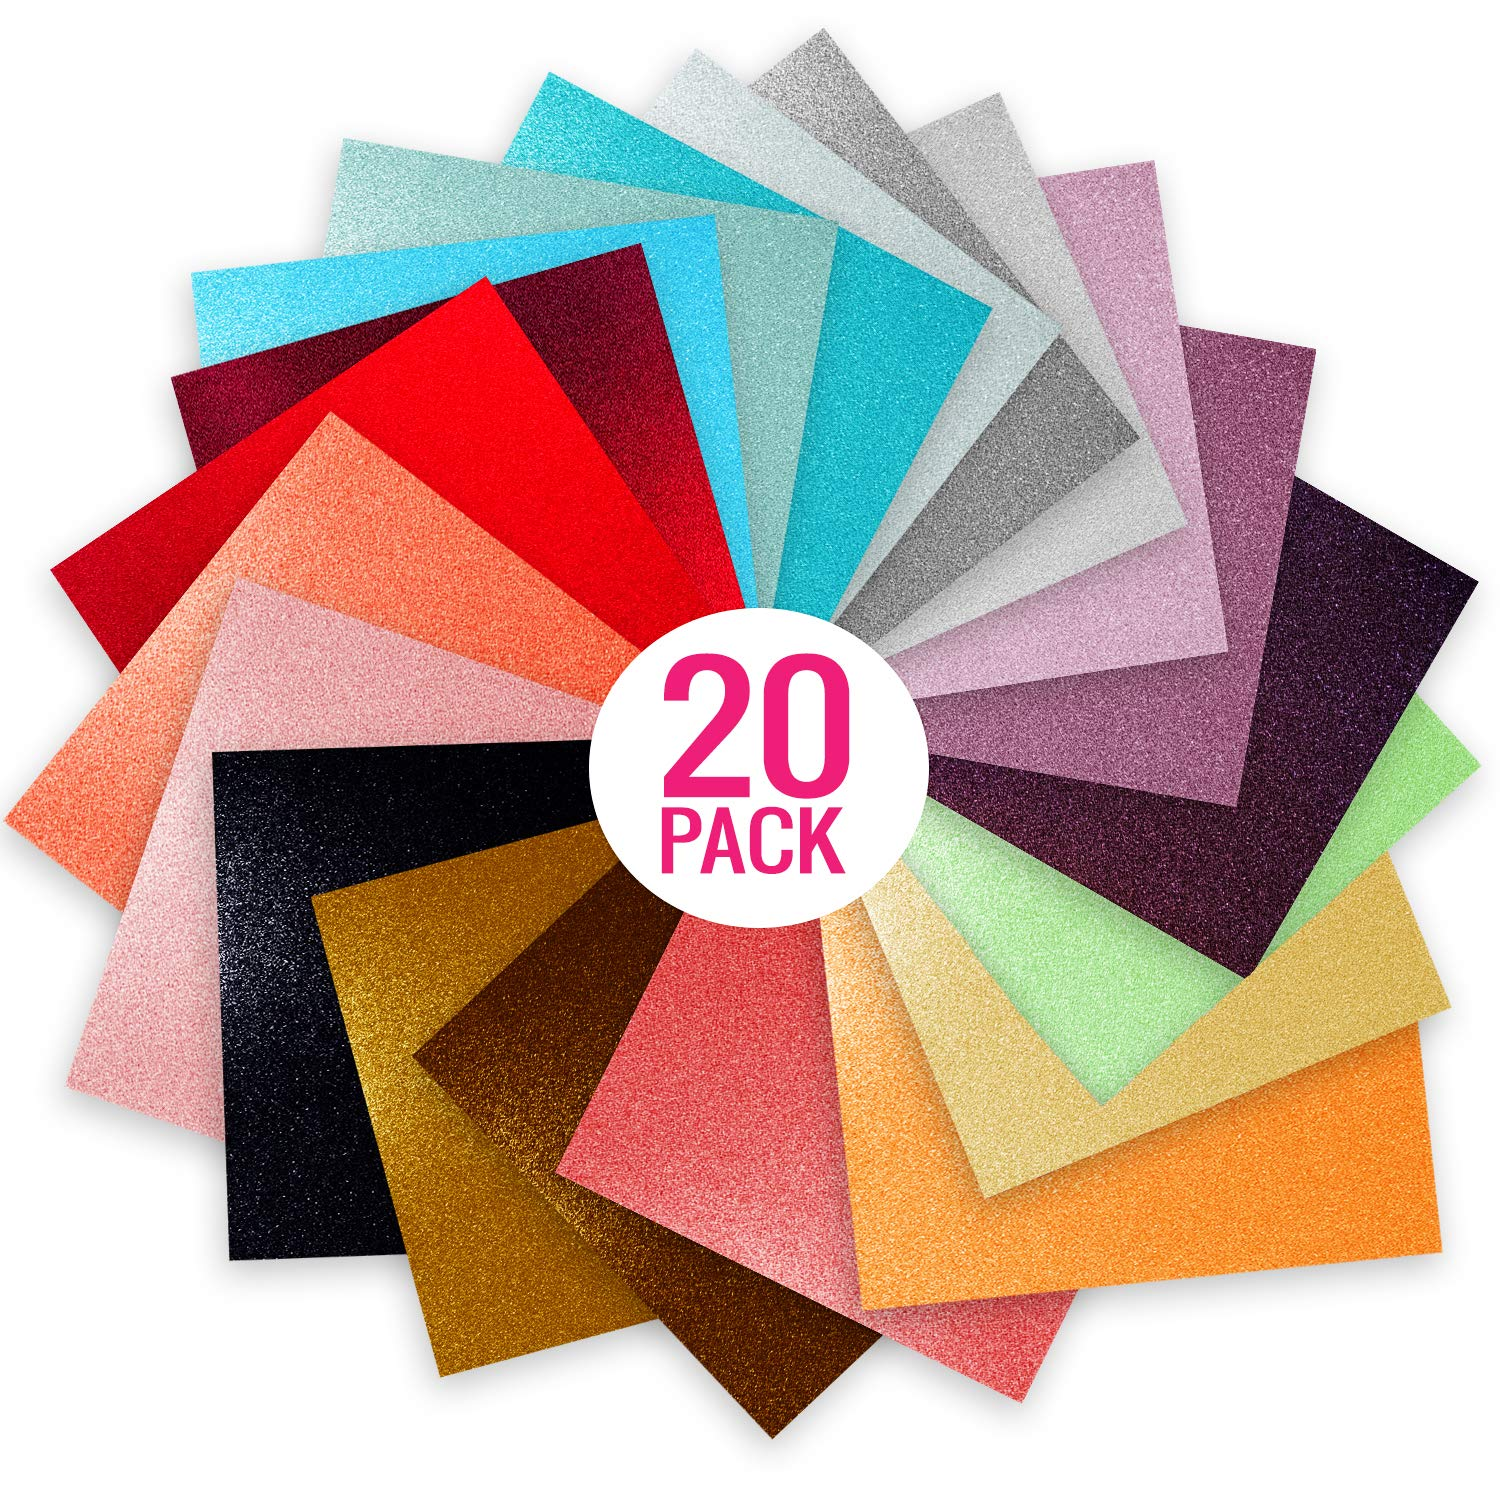 Glitter Vinyl Self Adhesive Vinyl Sheets 6 x 6 | Cricut Silhouette Cameo Craft Cutters | 20 Pack Assortment Craft Vinyl | Stick to Glass, Plastic, Metal & More | Use Our High-Tack Transfer Paper Craftopia 4336976694